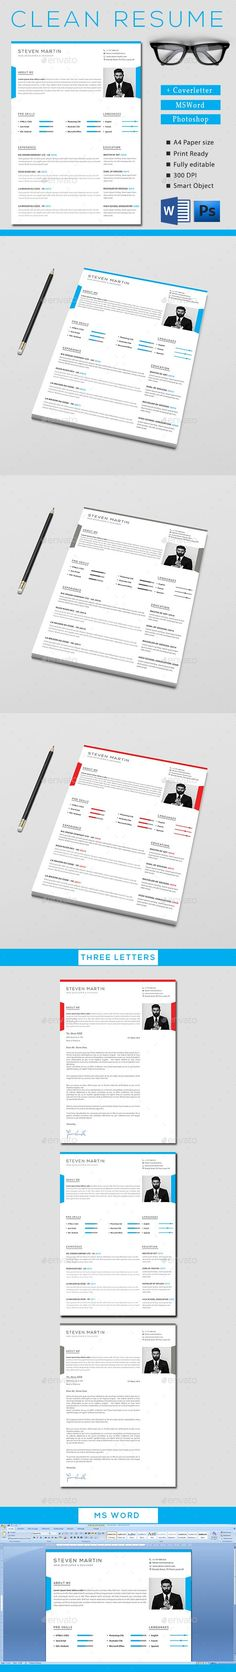 Clean Resume Template PSD. Download here:  #resume #template #2017